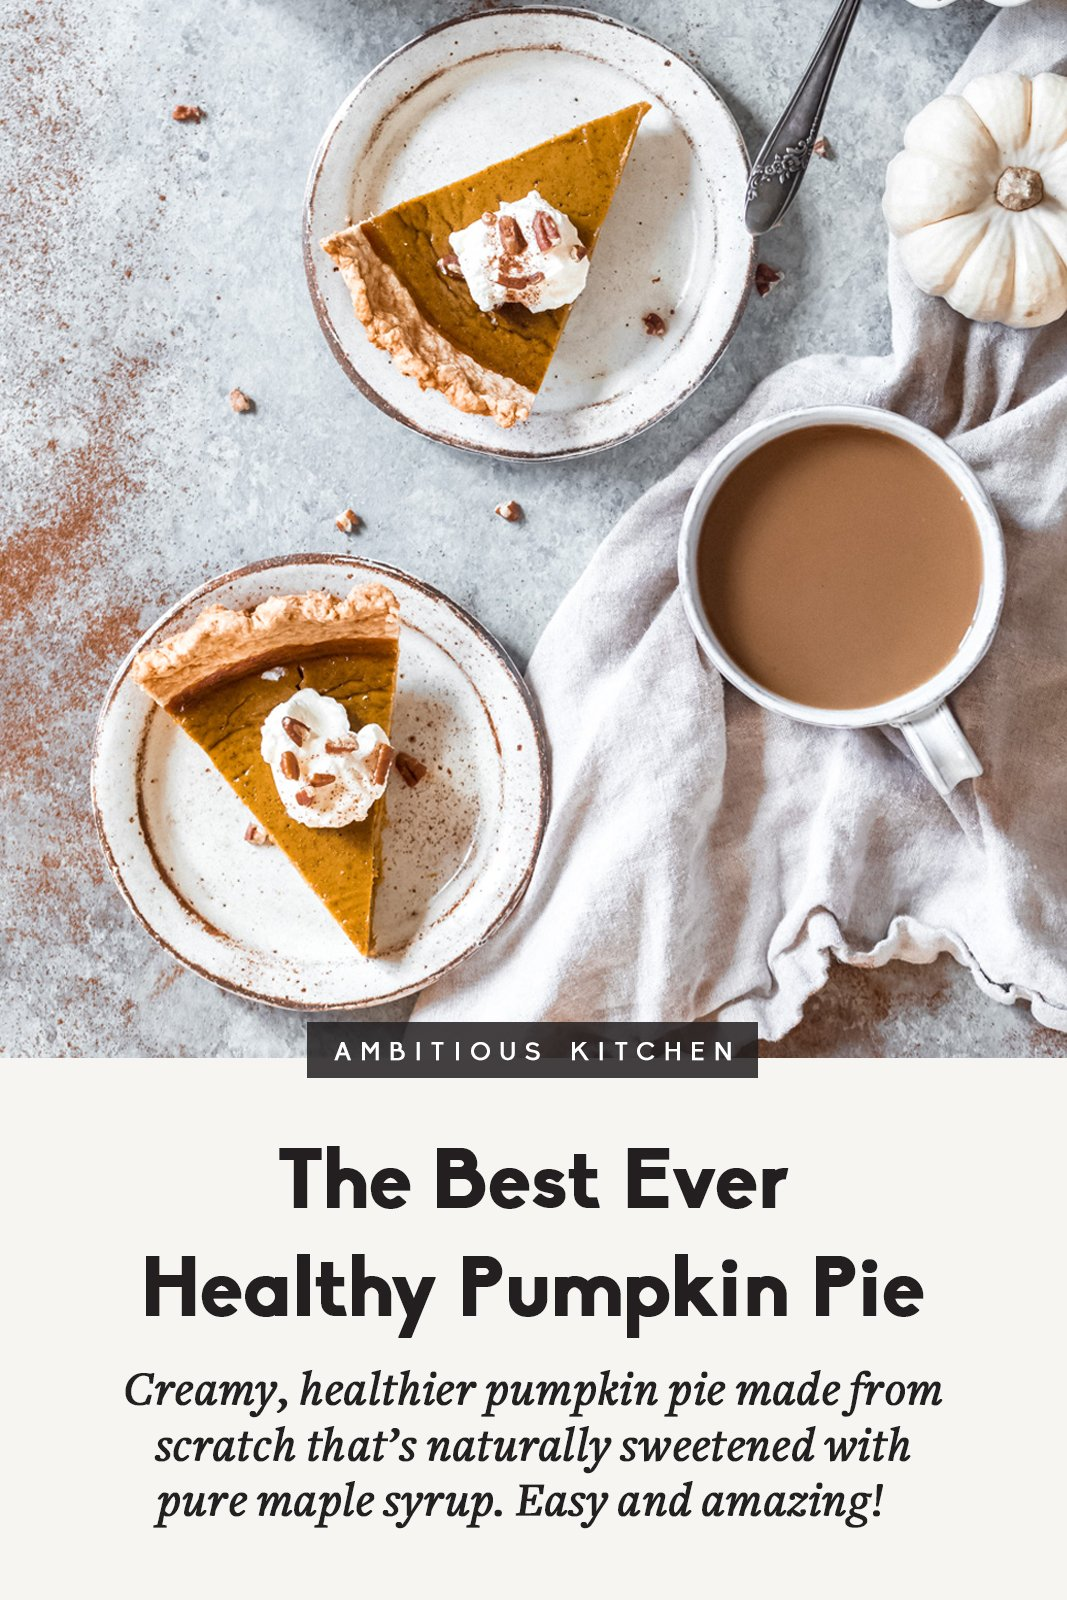 Creamy, healthier pumpkin pie from scratch that's naturally sweetened with pure maple syrup. This easy-to-make pumpkin pie recipe will knock your socks off! Serve with dairy free or regular ice cream, or a little whipped cream for a treat.